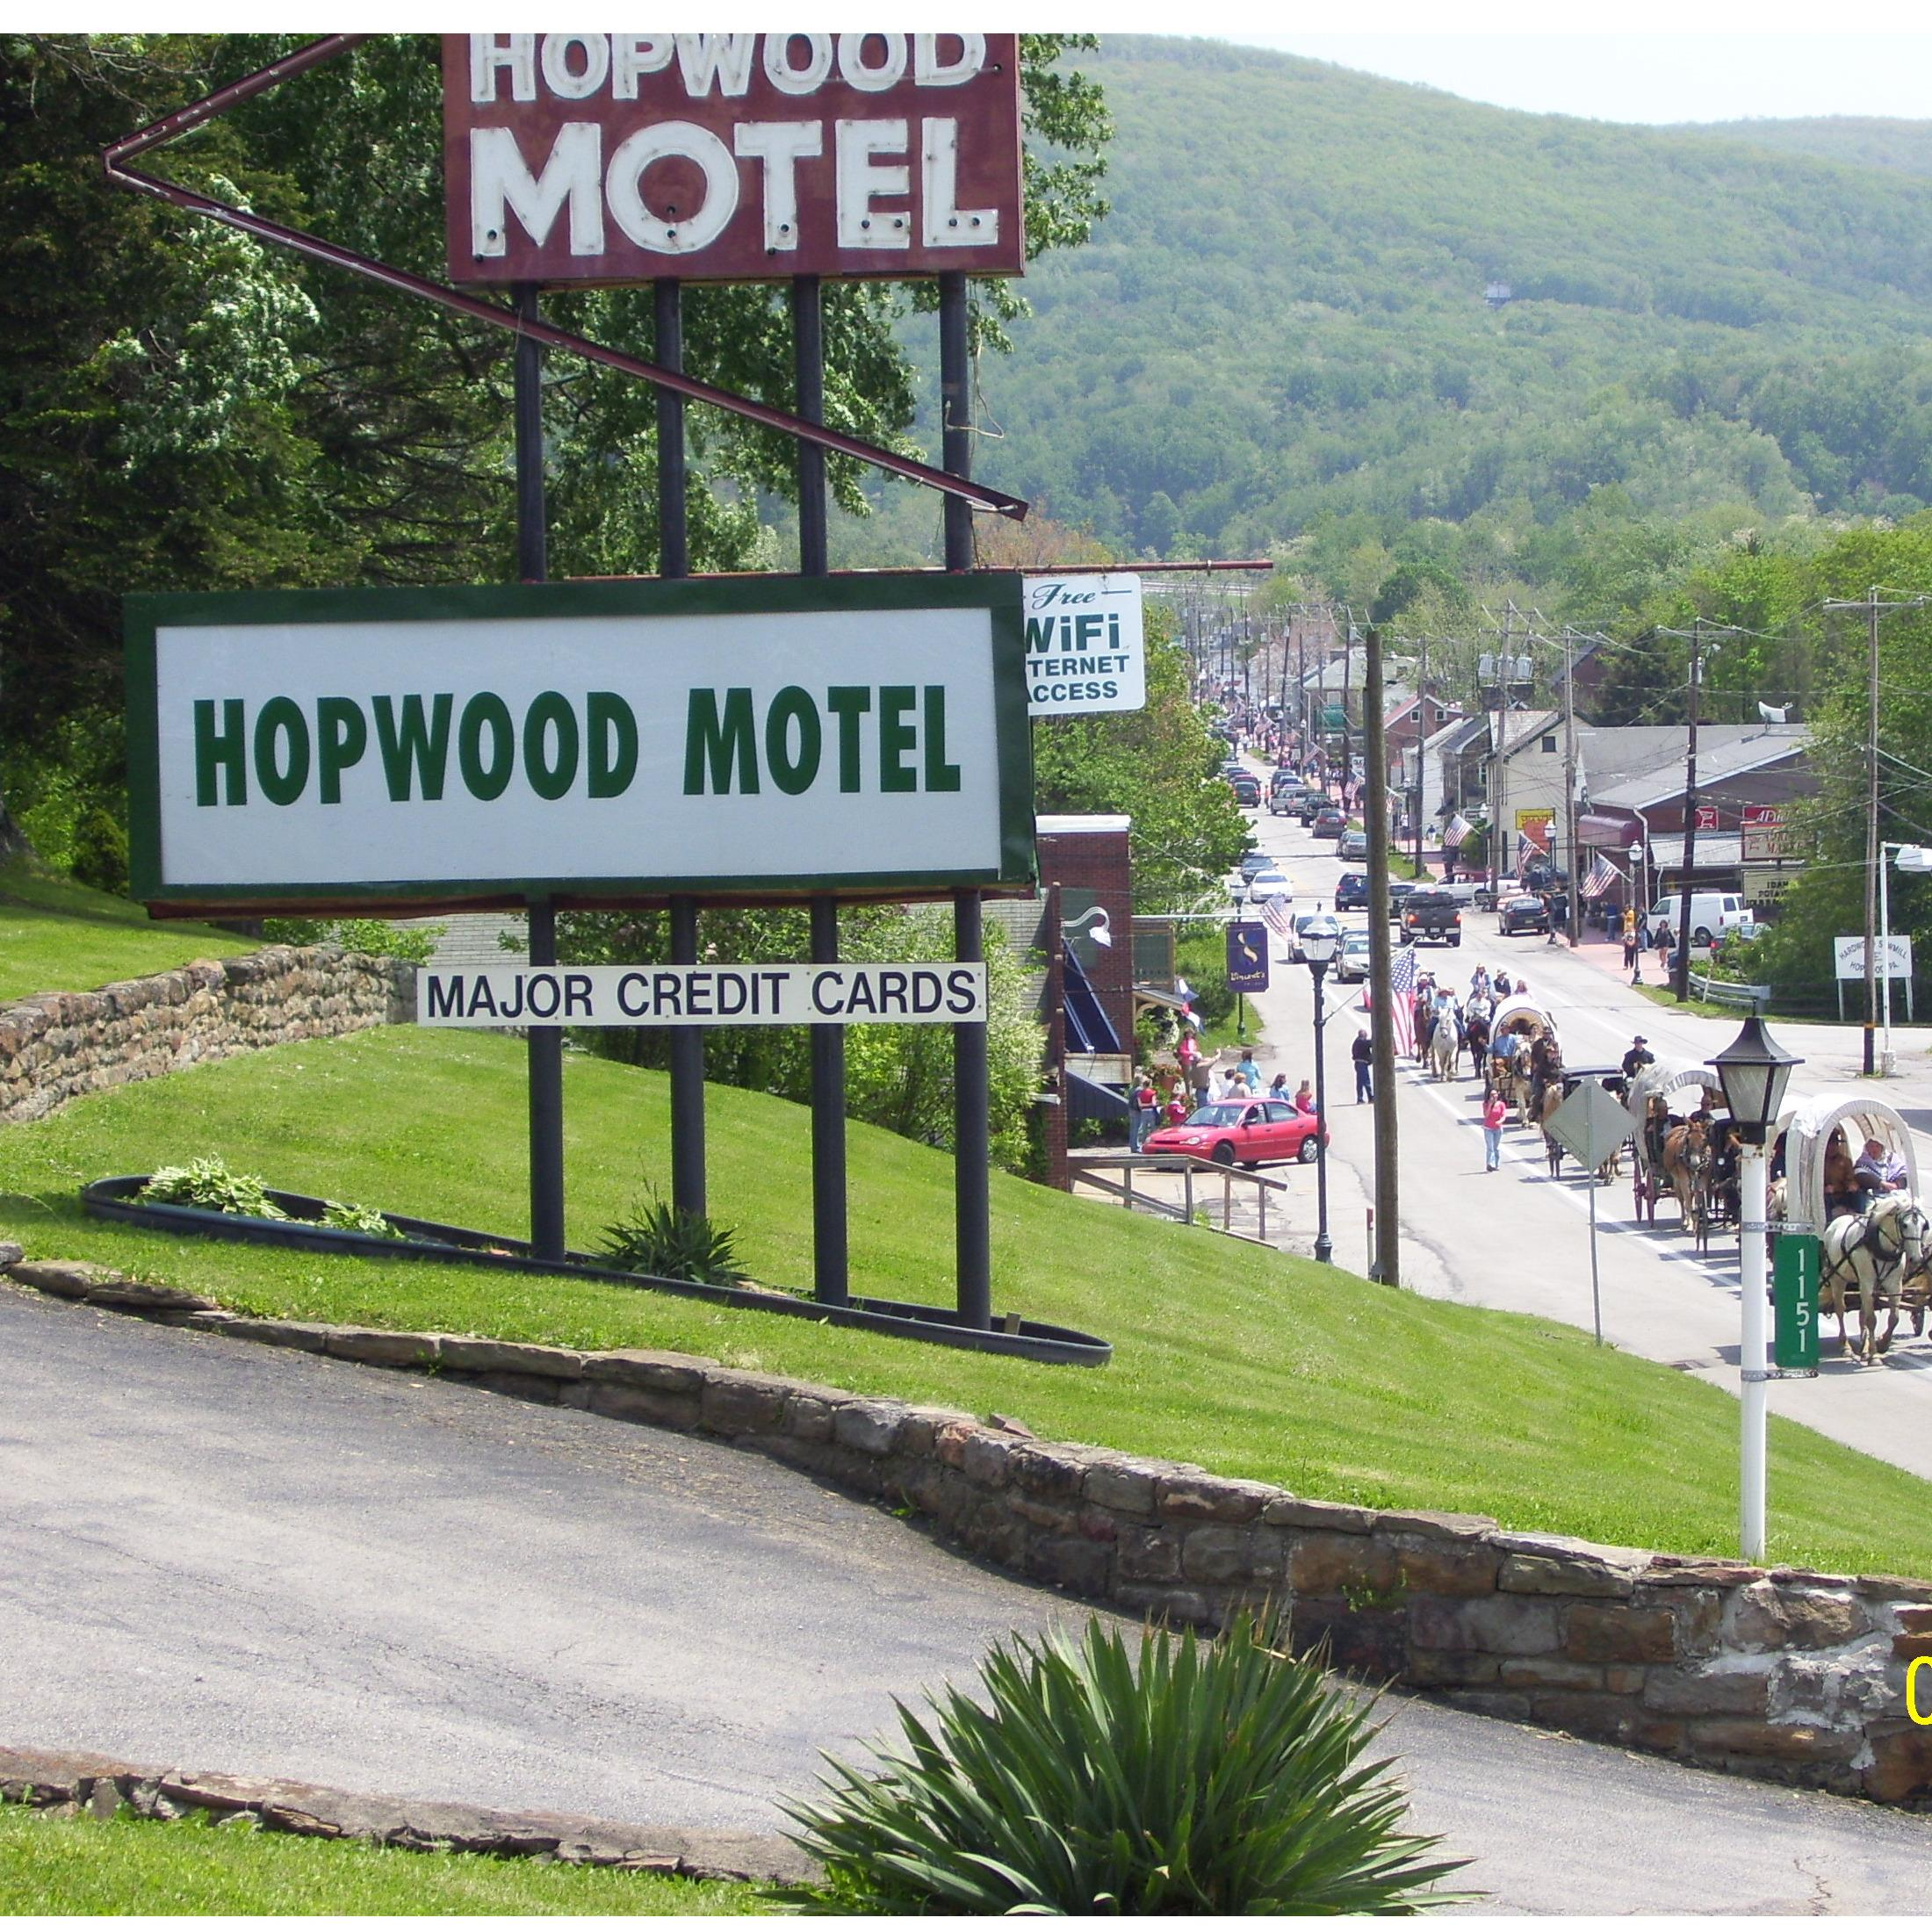 Hopwood Motel